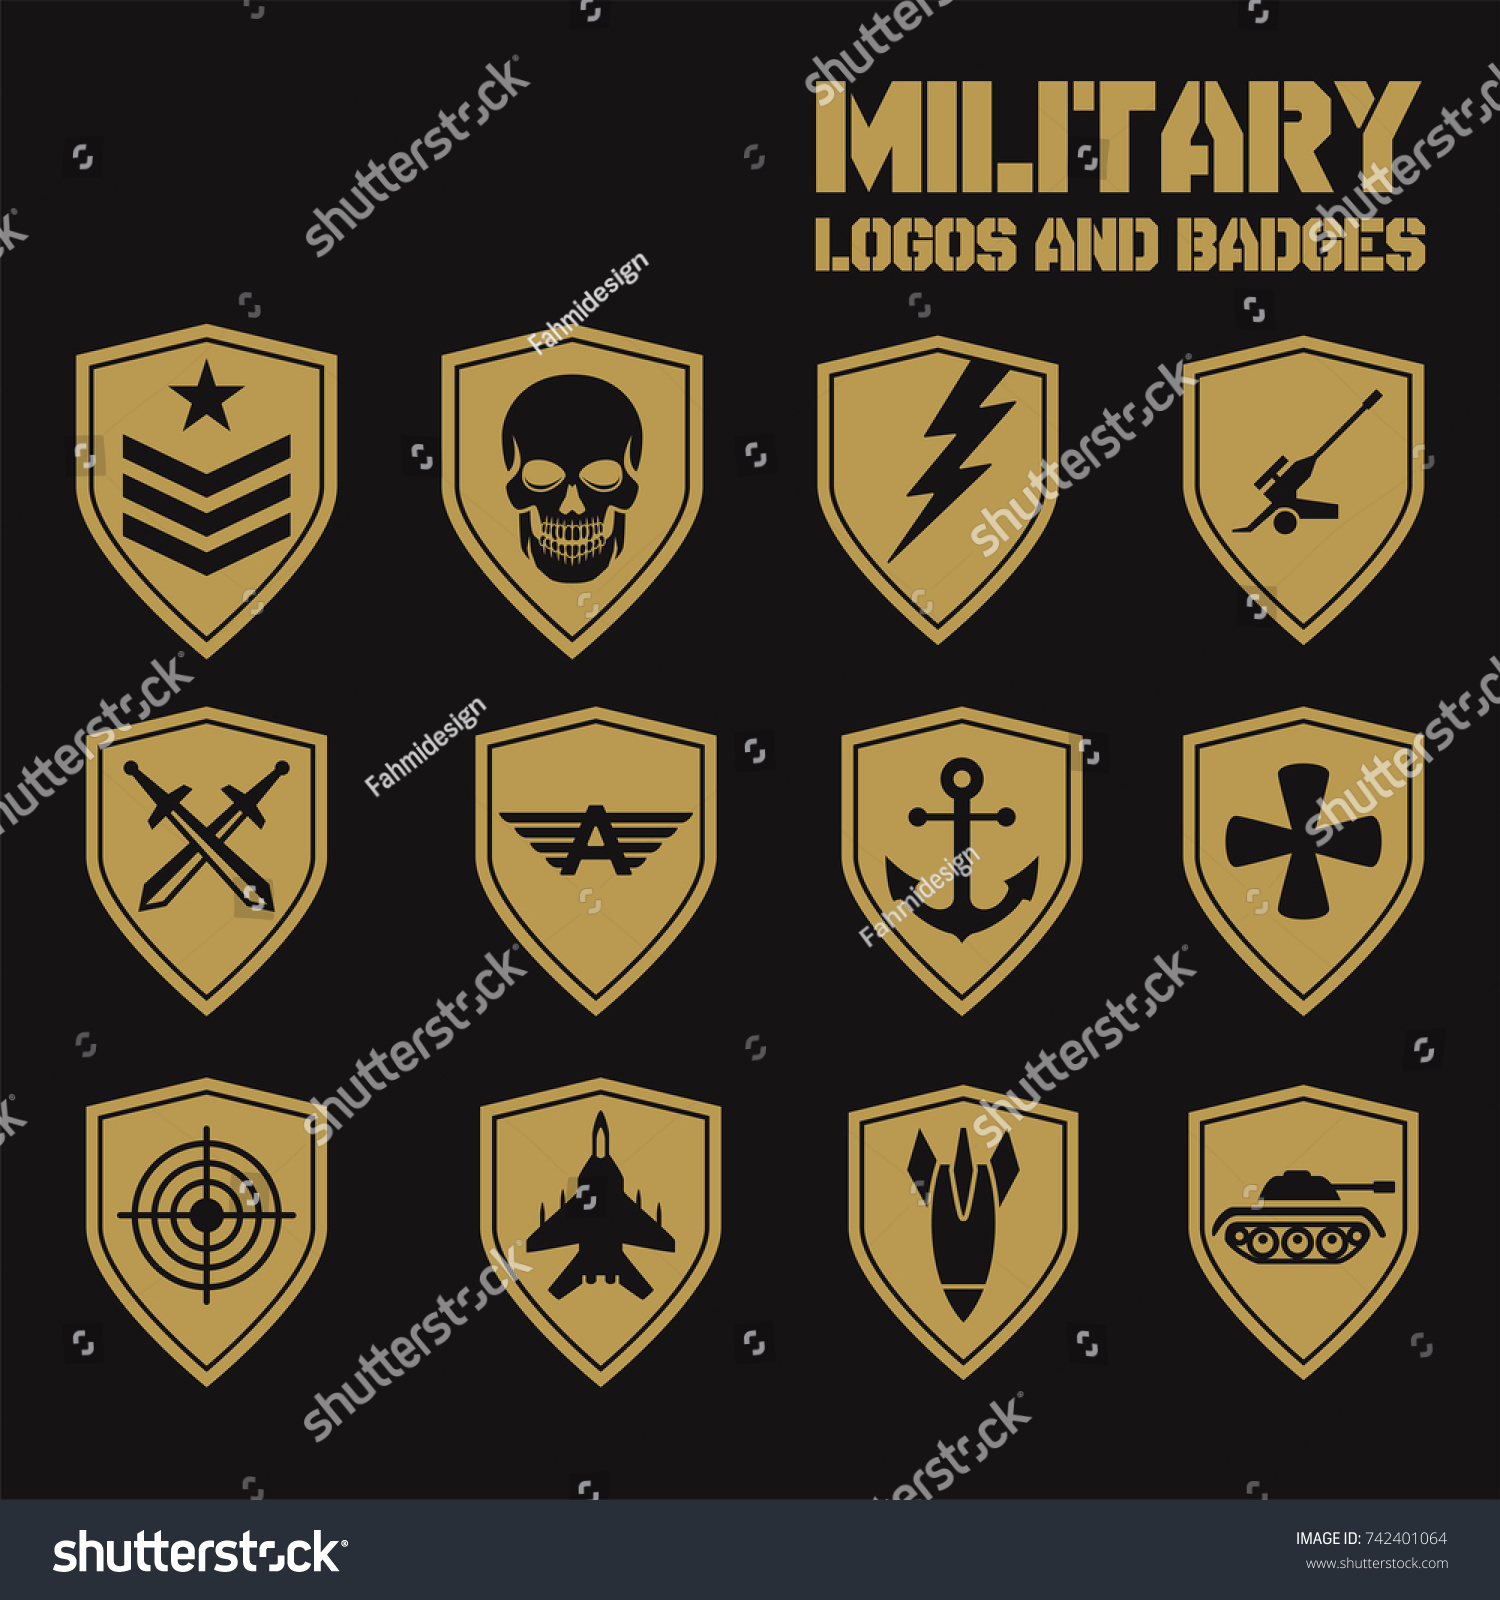 military army like badges white logos stock vector 742401064 shutterstock. Black Bedroom Furniture Sets. Home Design Ideas